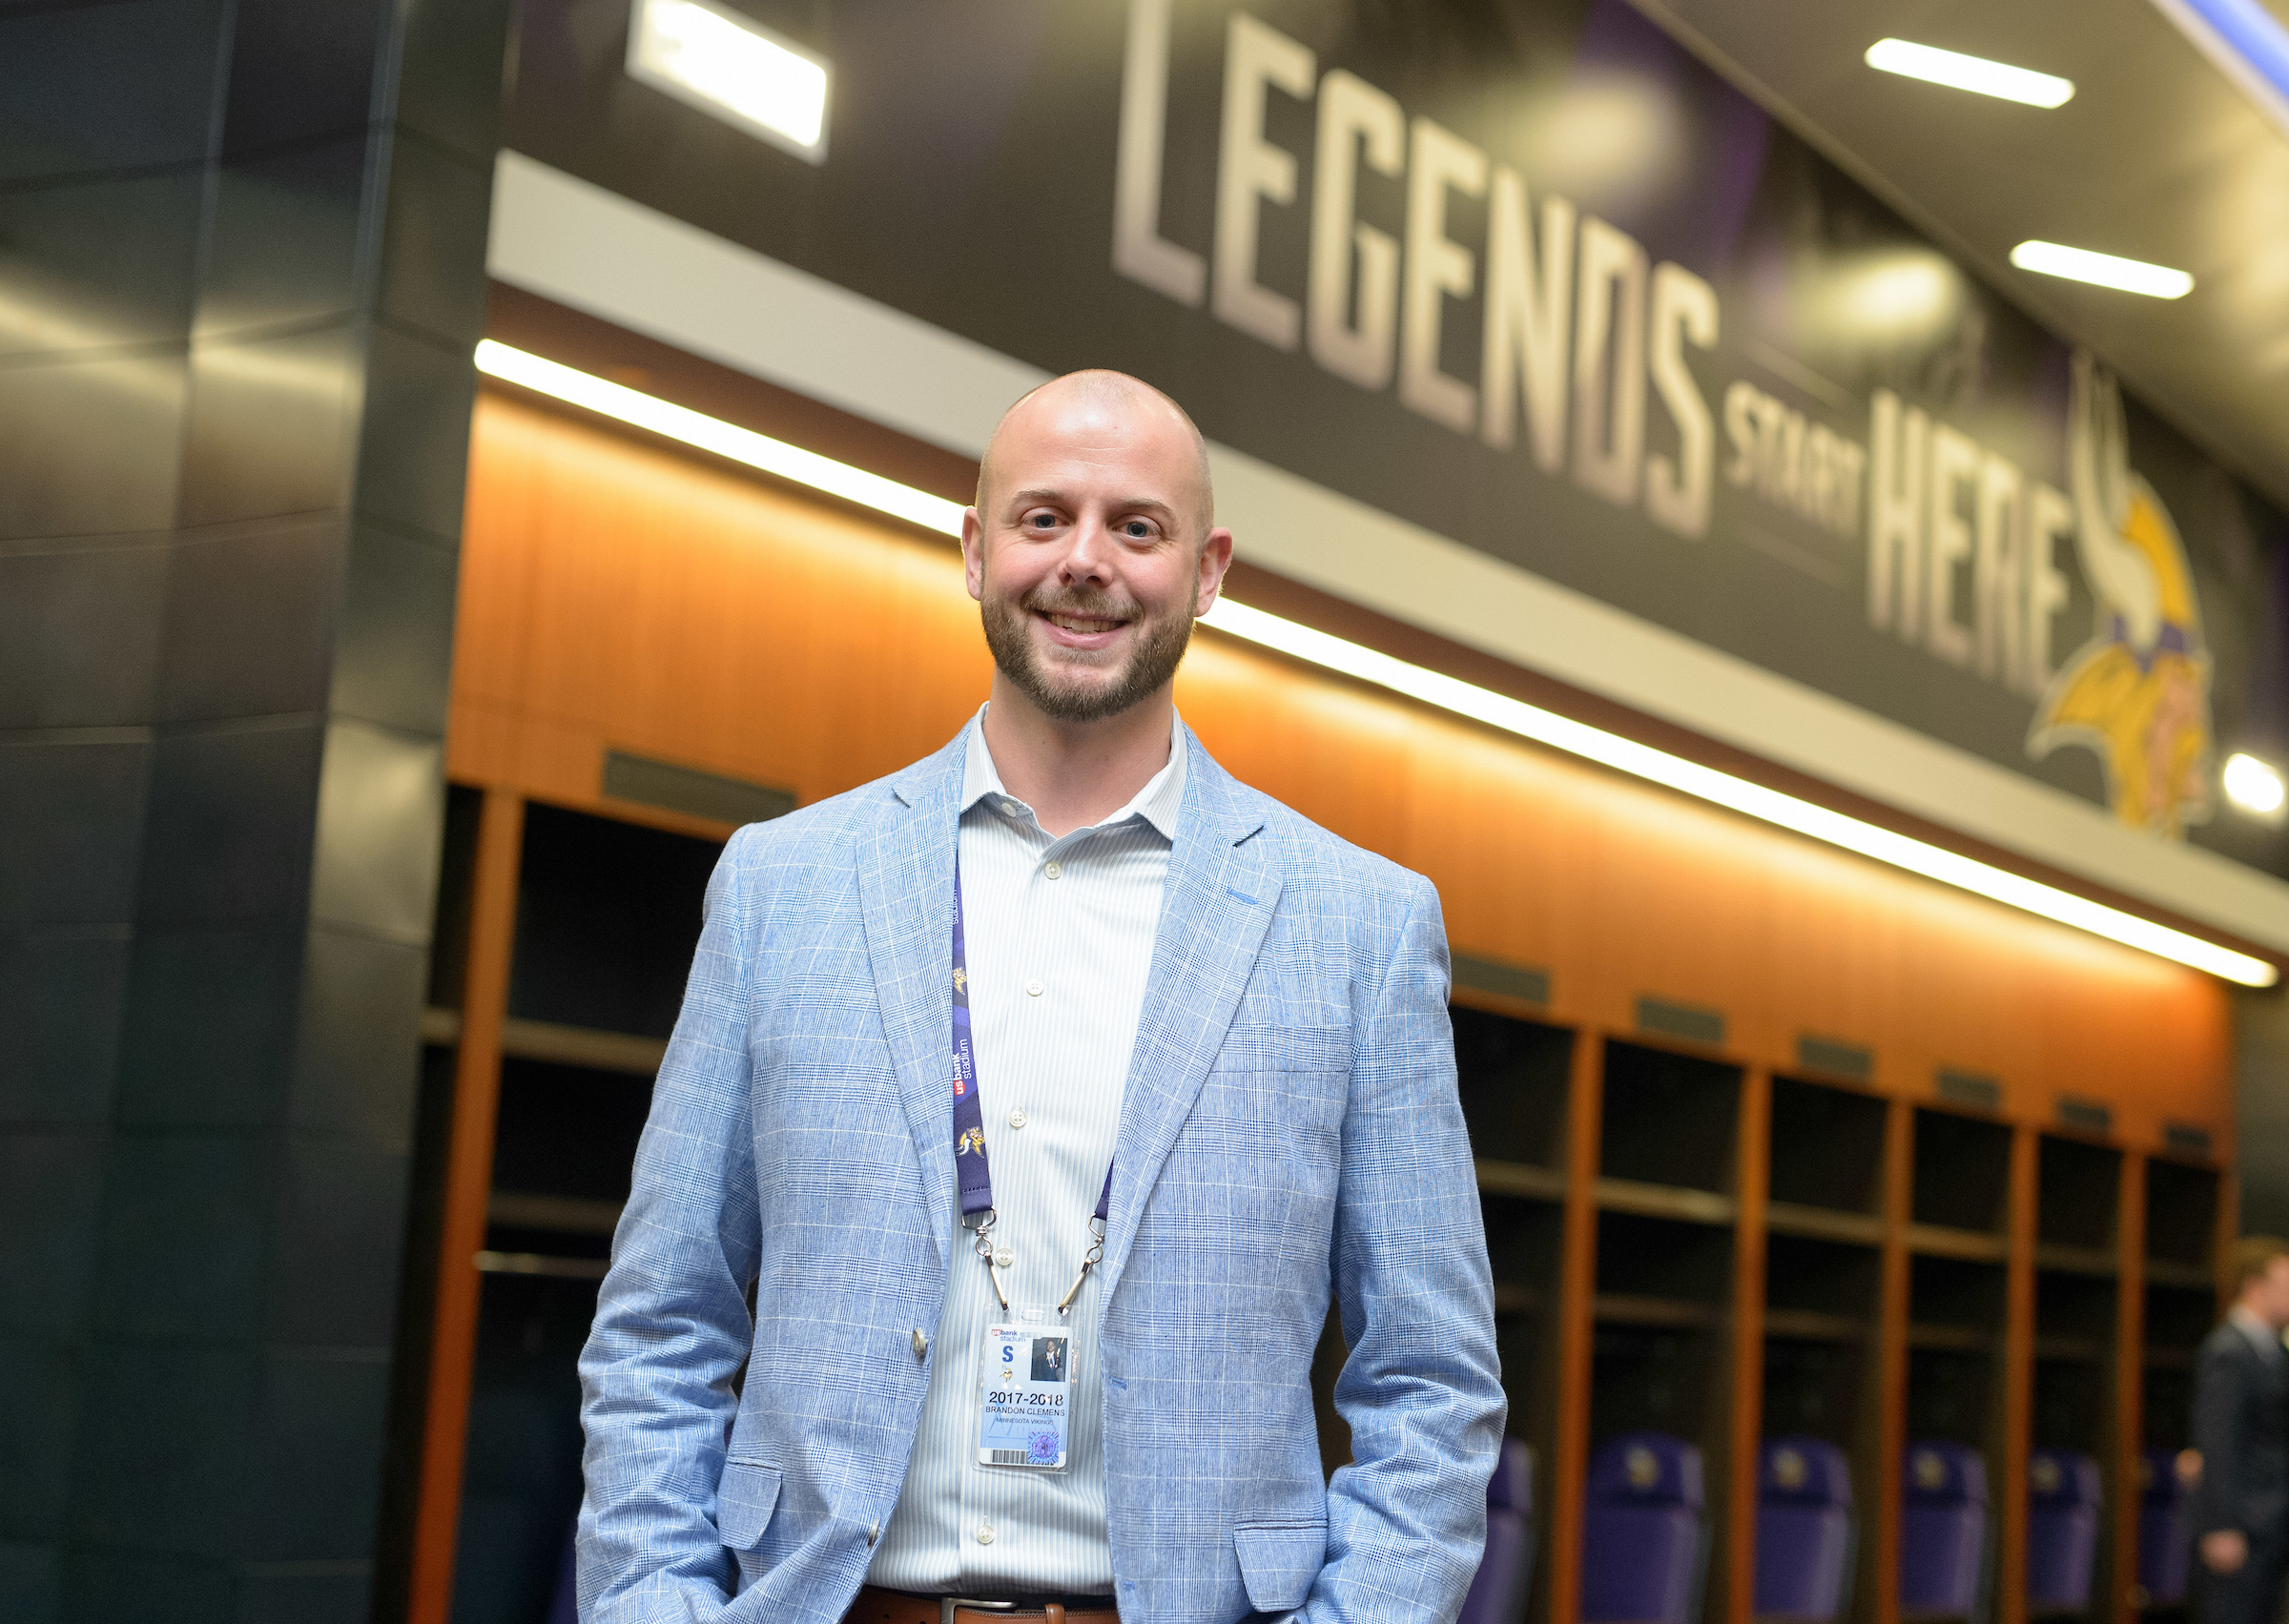 University of Iowa graduate Brandon Clemens stands inside a facility of the Minnesota Vikings, the words Legends Start Here are written on the wall behind him